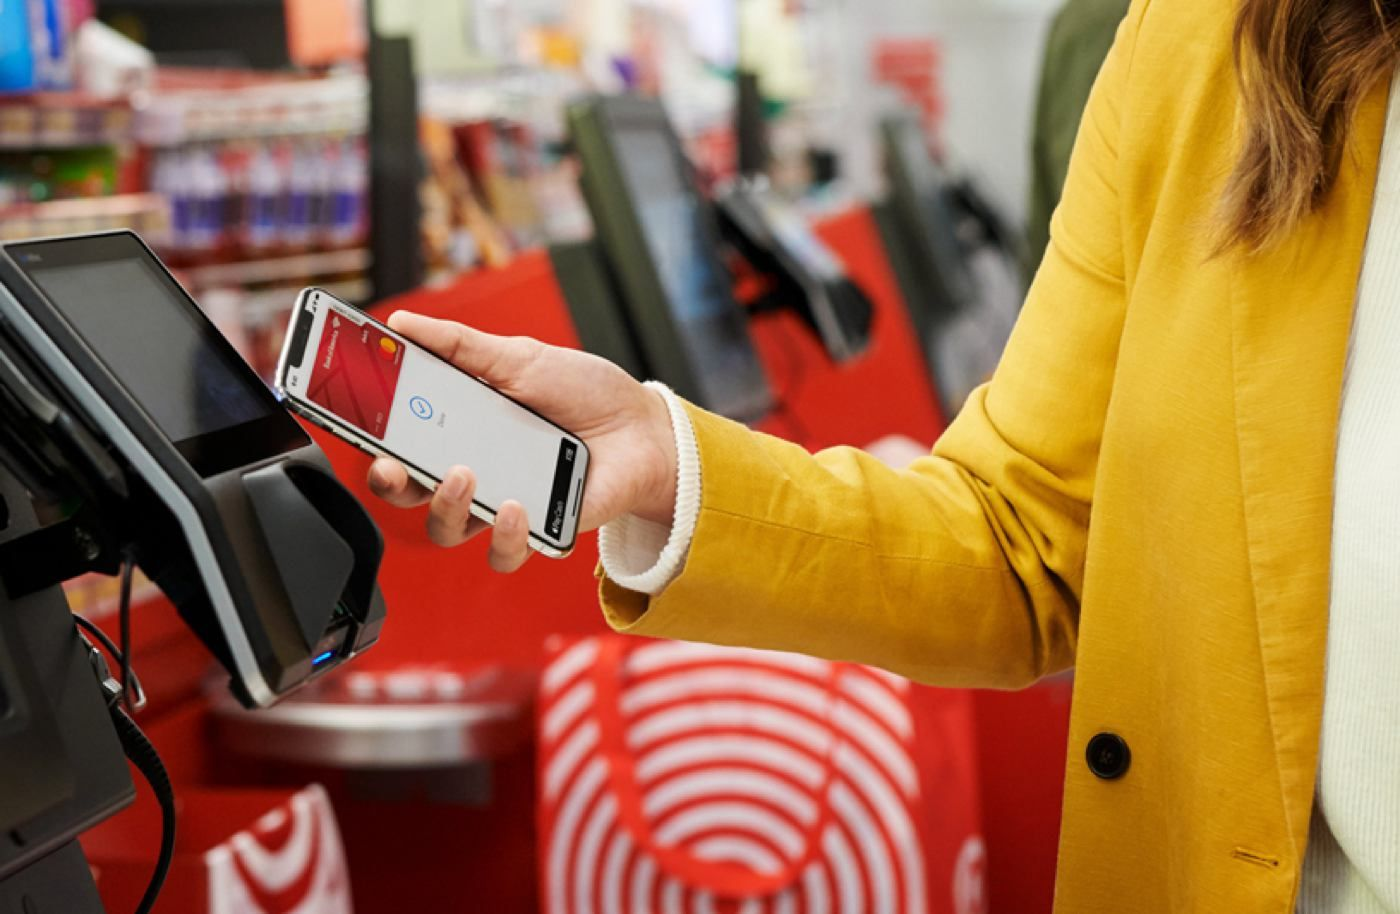 Apple Pay is making its way to Target, Taco Bell, and